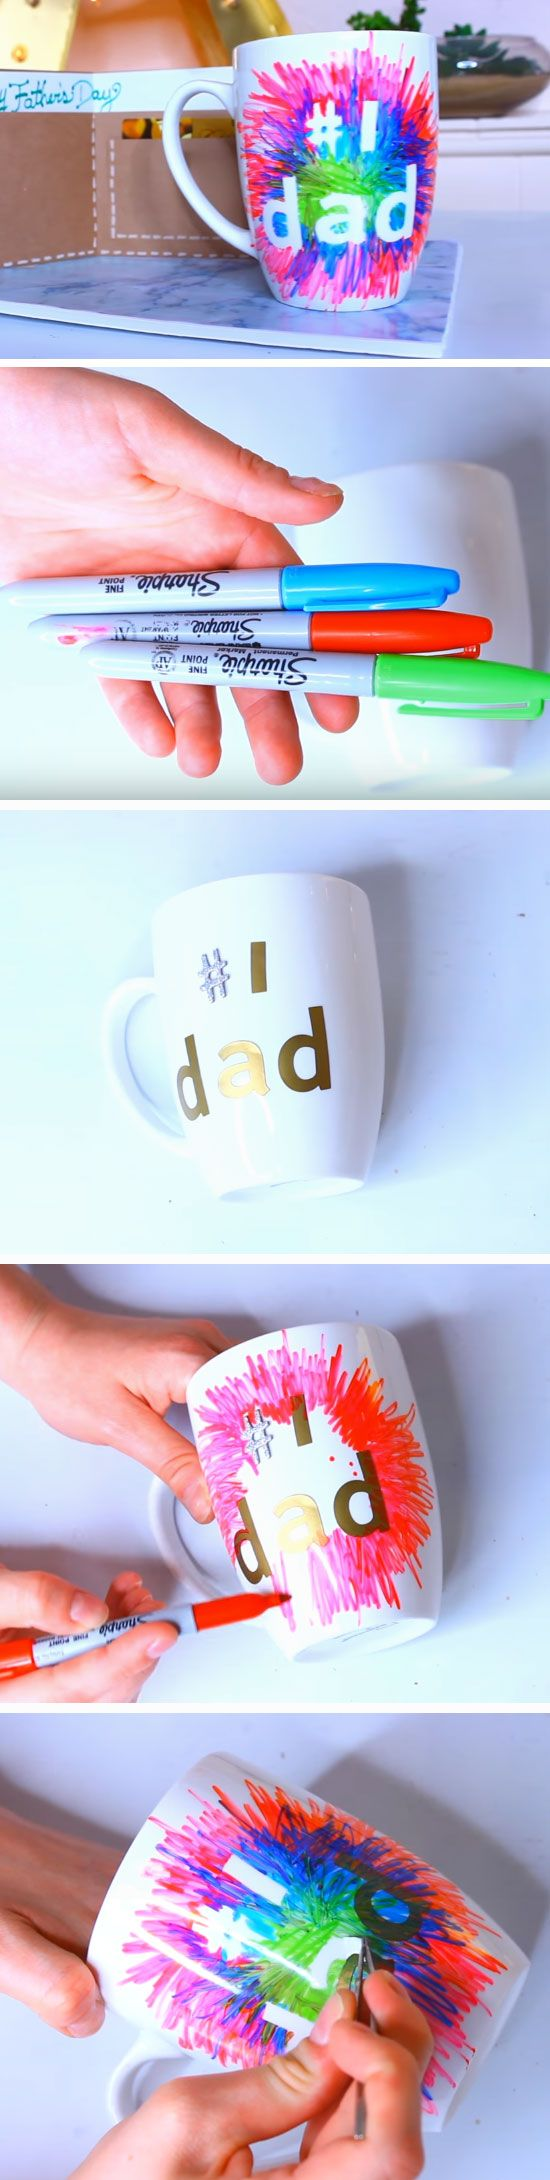 #1 Dad Mug | 25+ DIY Christmas Gifts for Dads & Grandfathers                                                                                                                                                                                 More